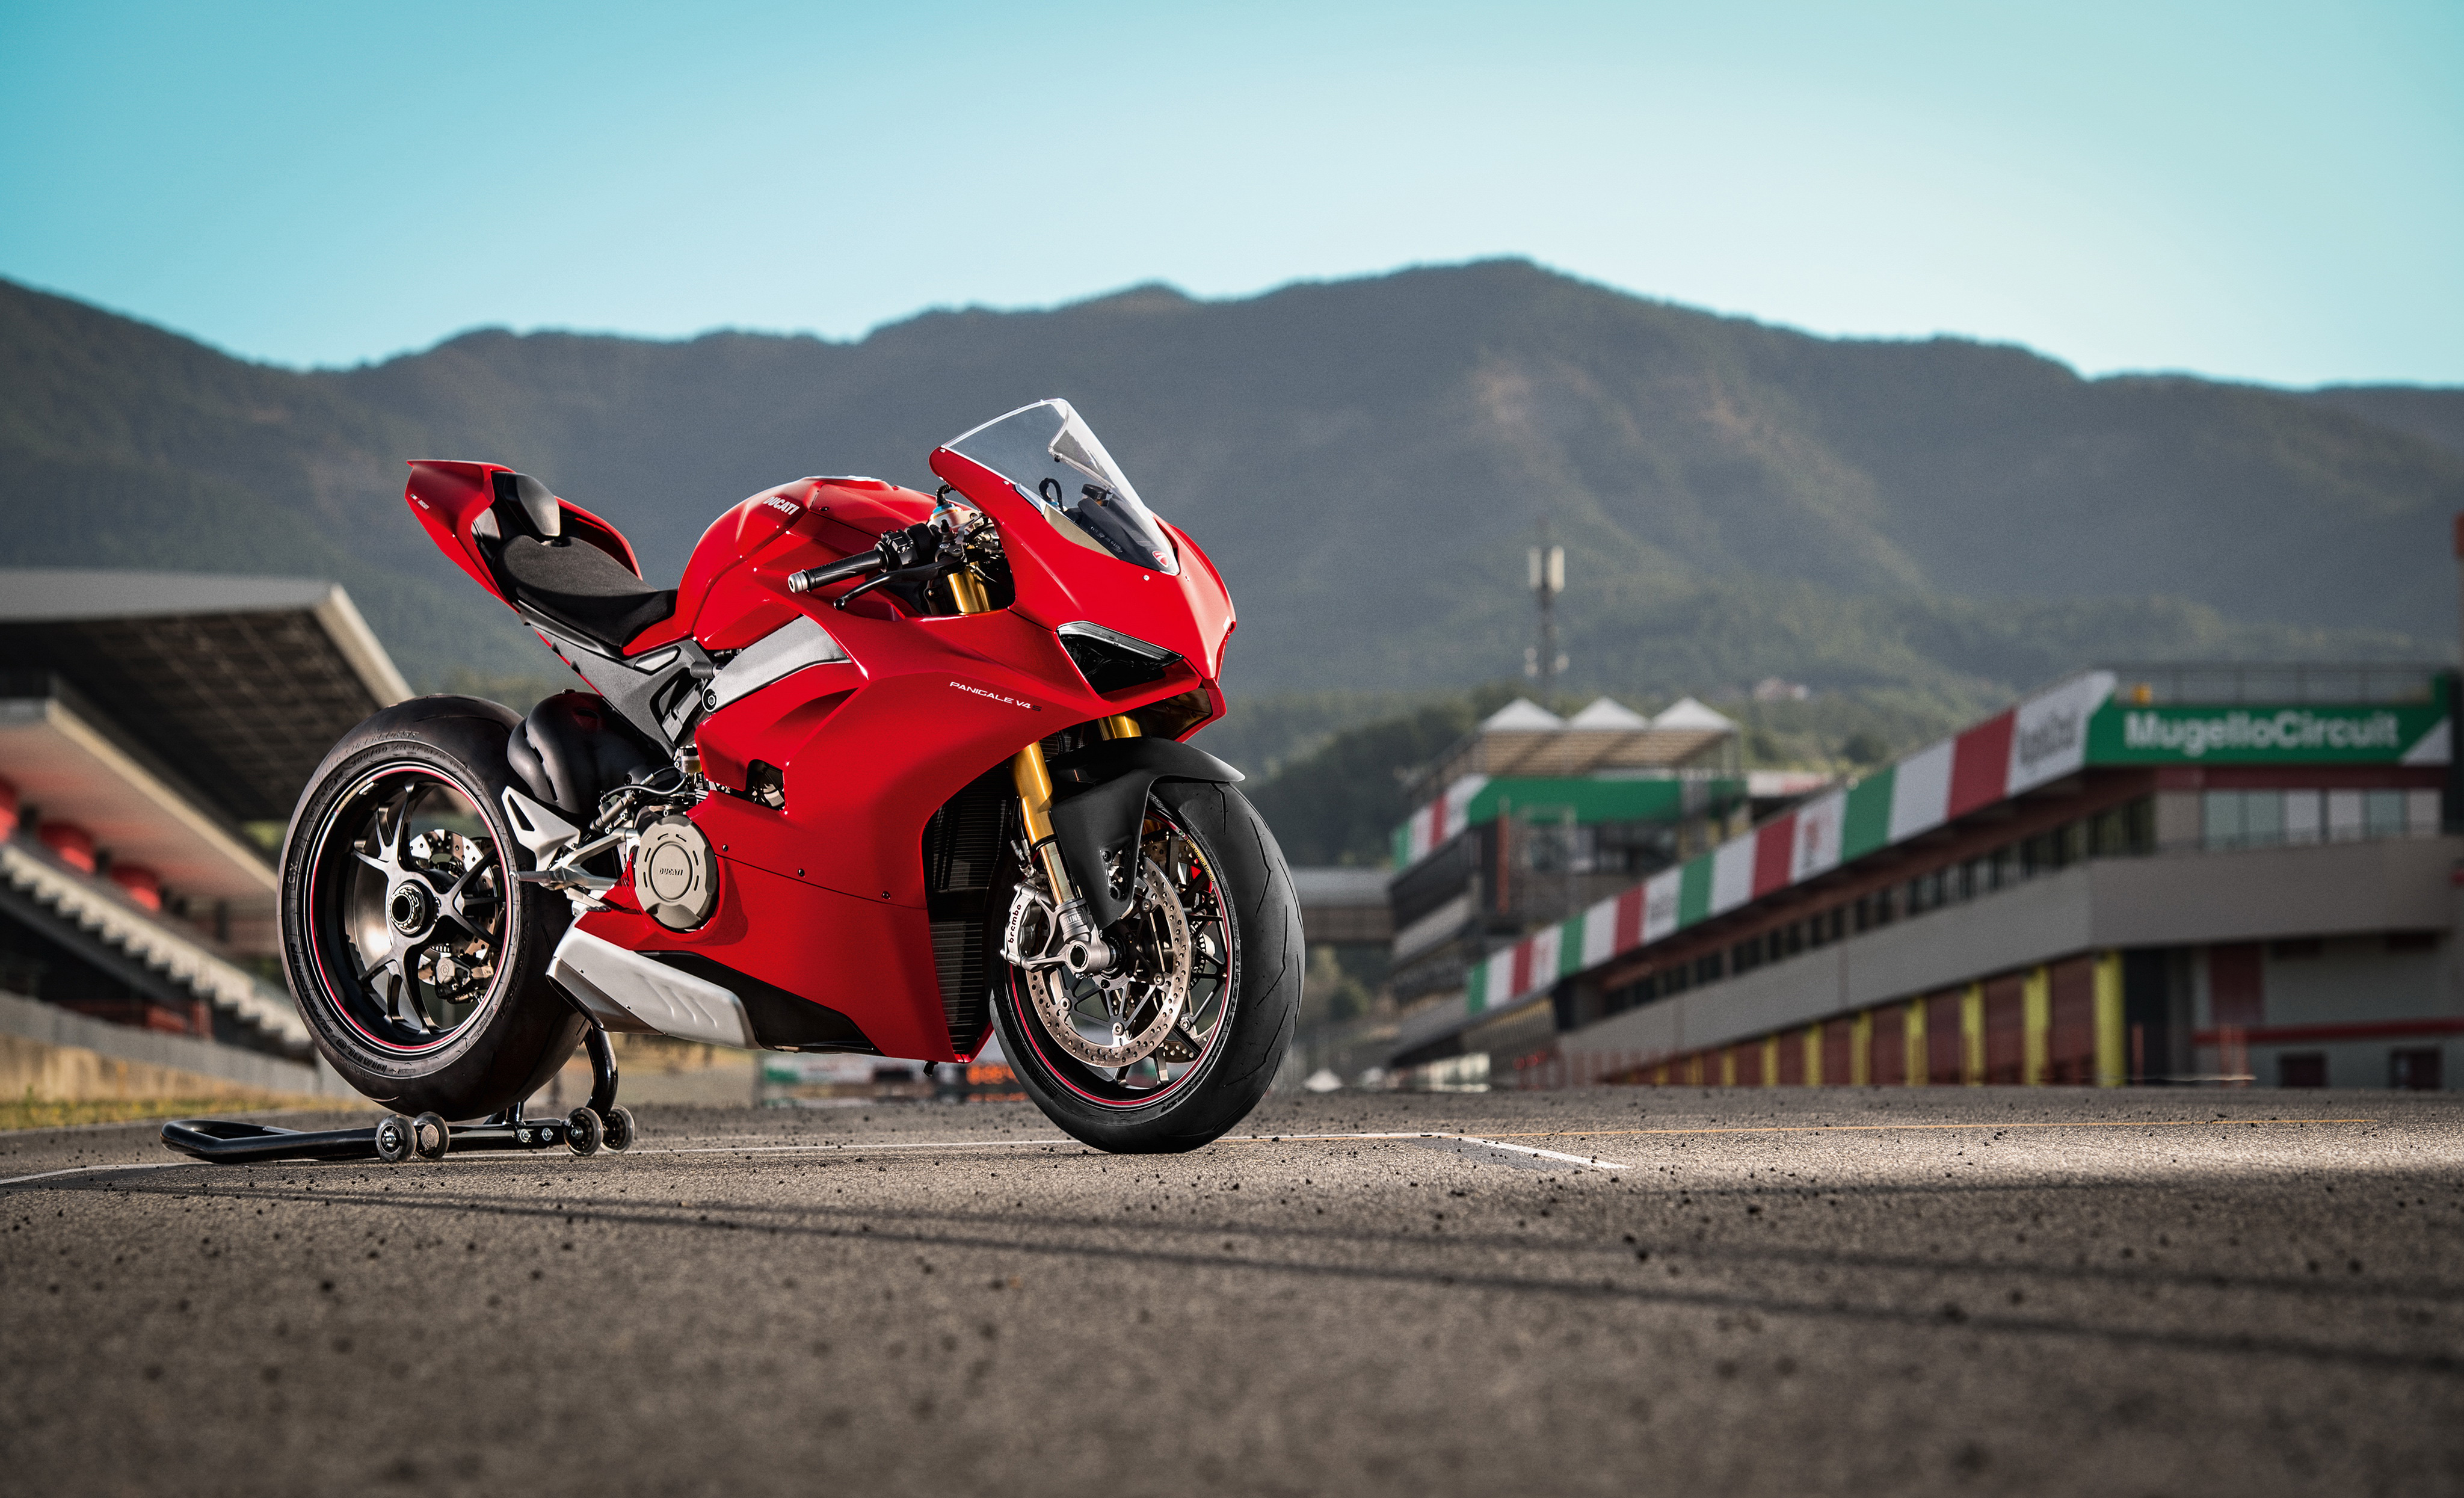 Ducati Panigale V4 S 2018 4k, HD Bikes, 4k Wallpapers, Images ...